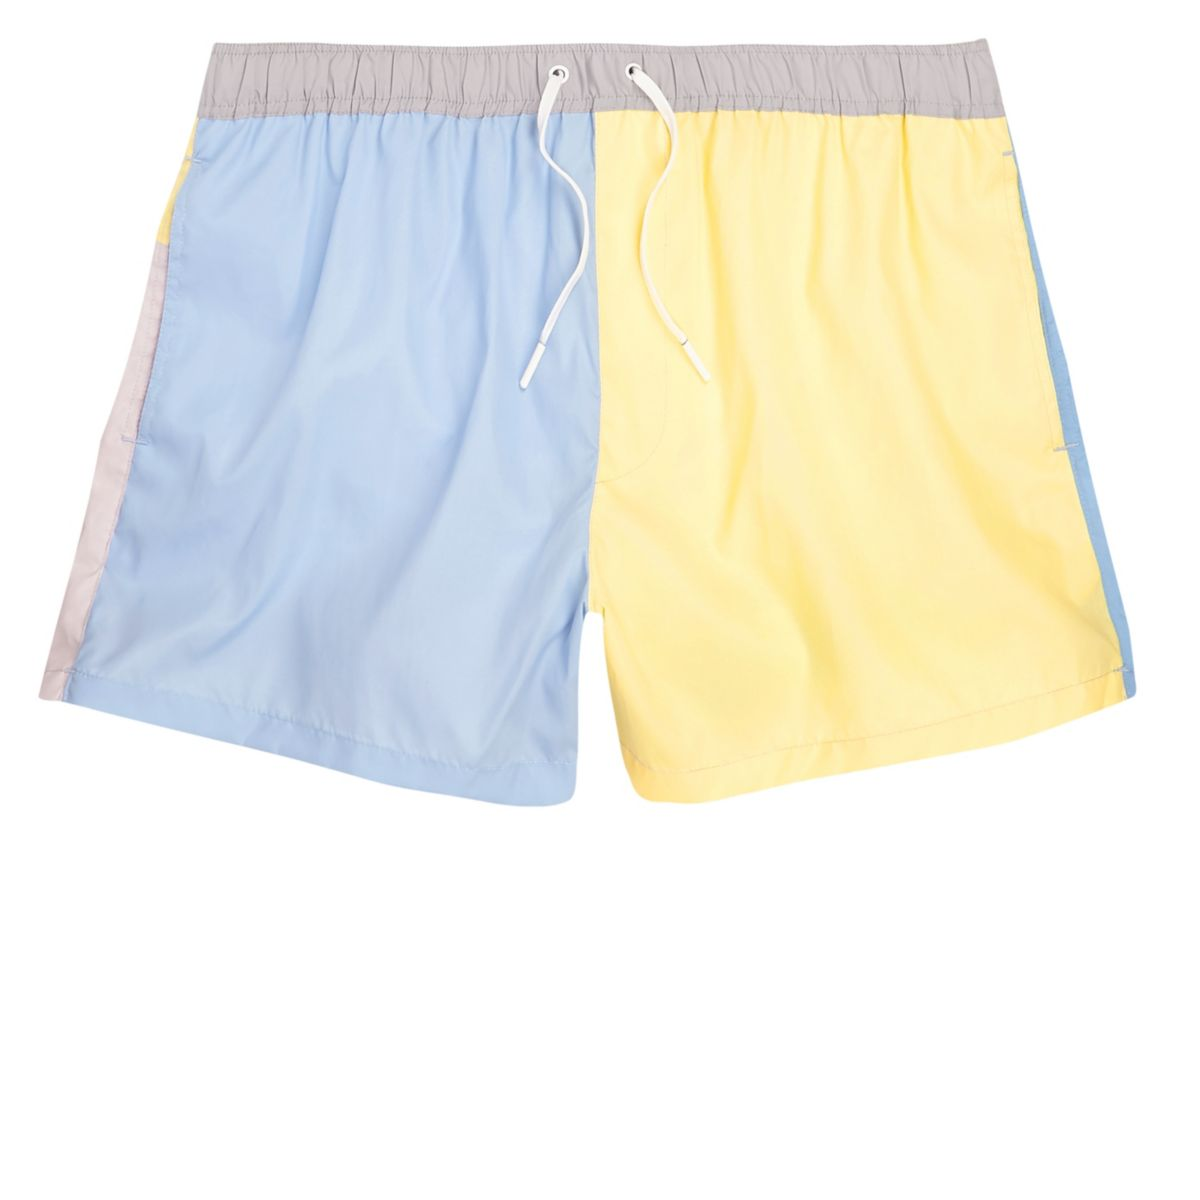 Light blue block color swim trunks